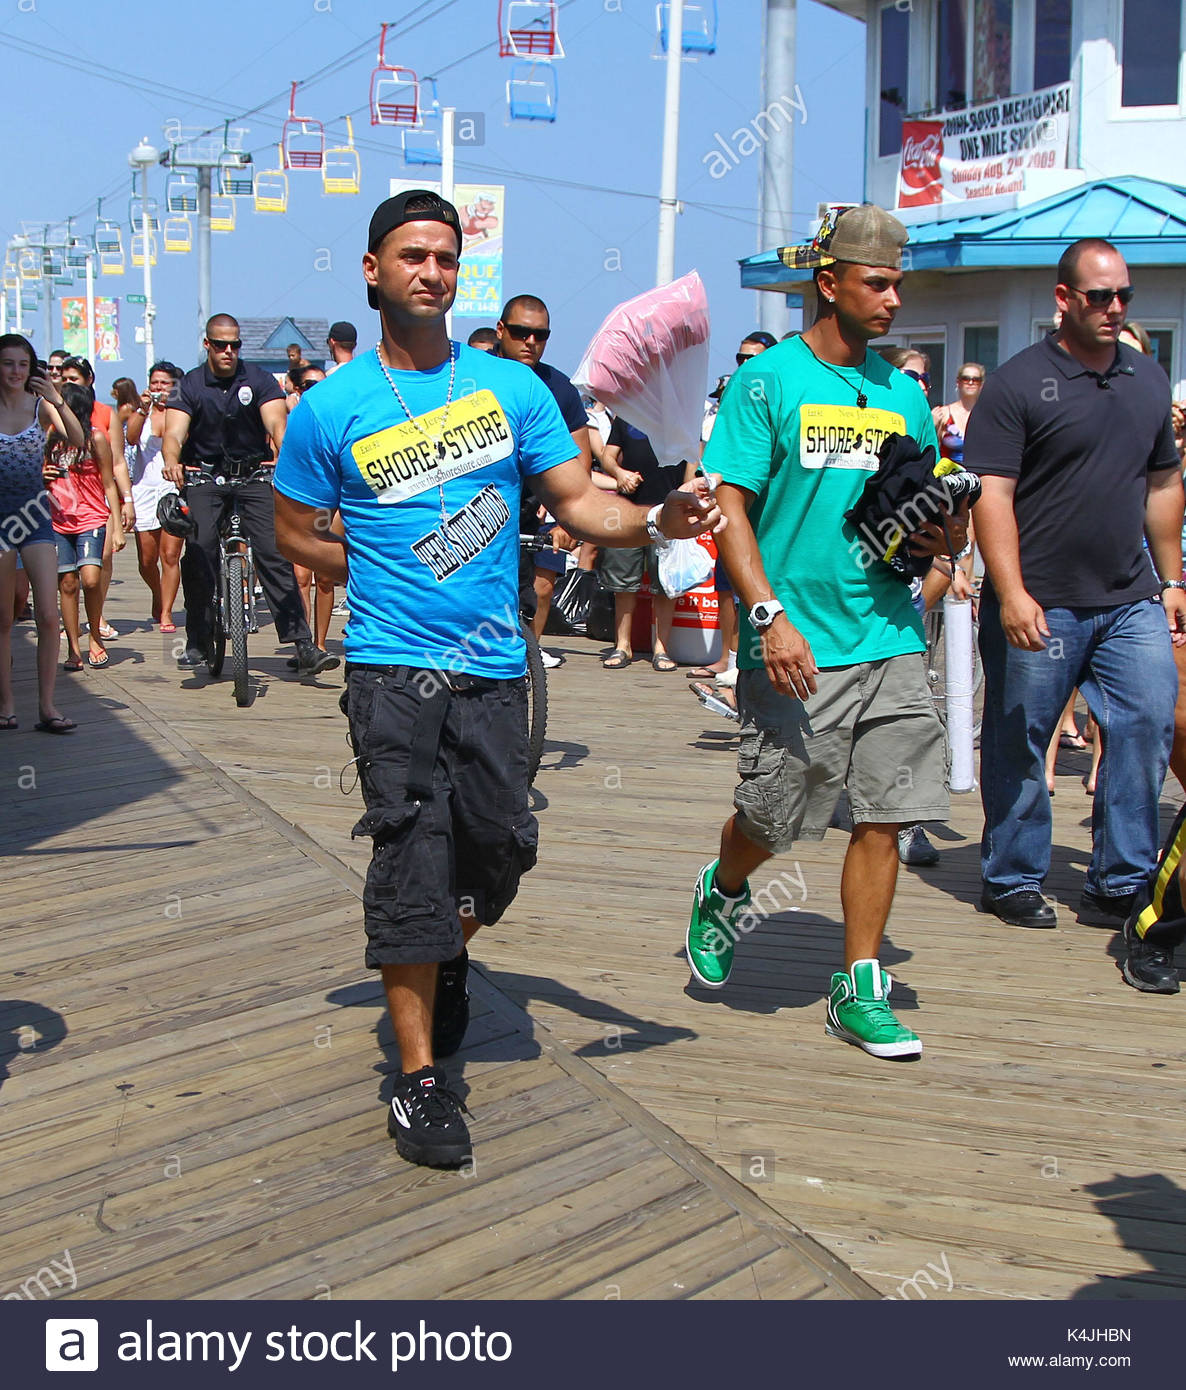 seaside heights single guys Fights break out in seaside park after social media post brought thousands to borough for beach party  seaside heights home jersey shore news seaside heights.